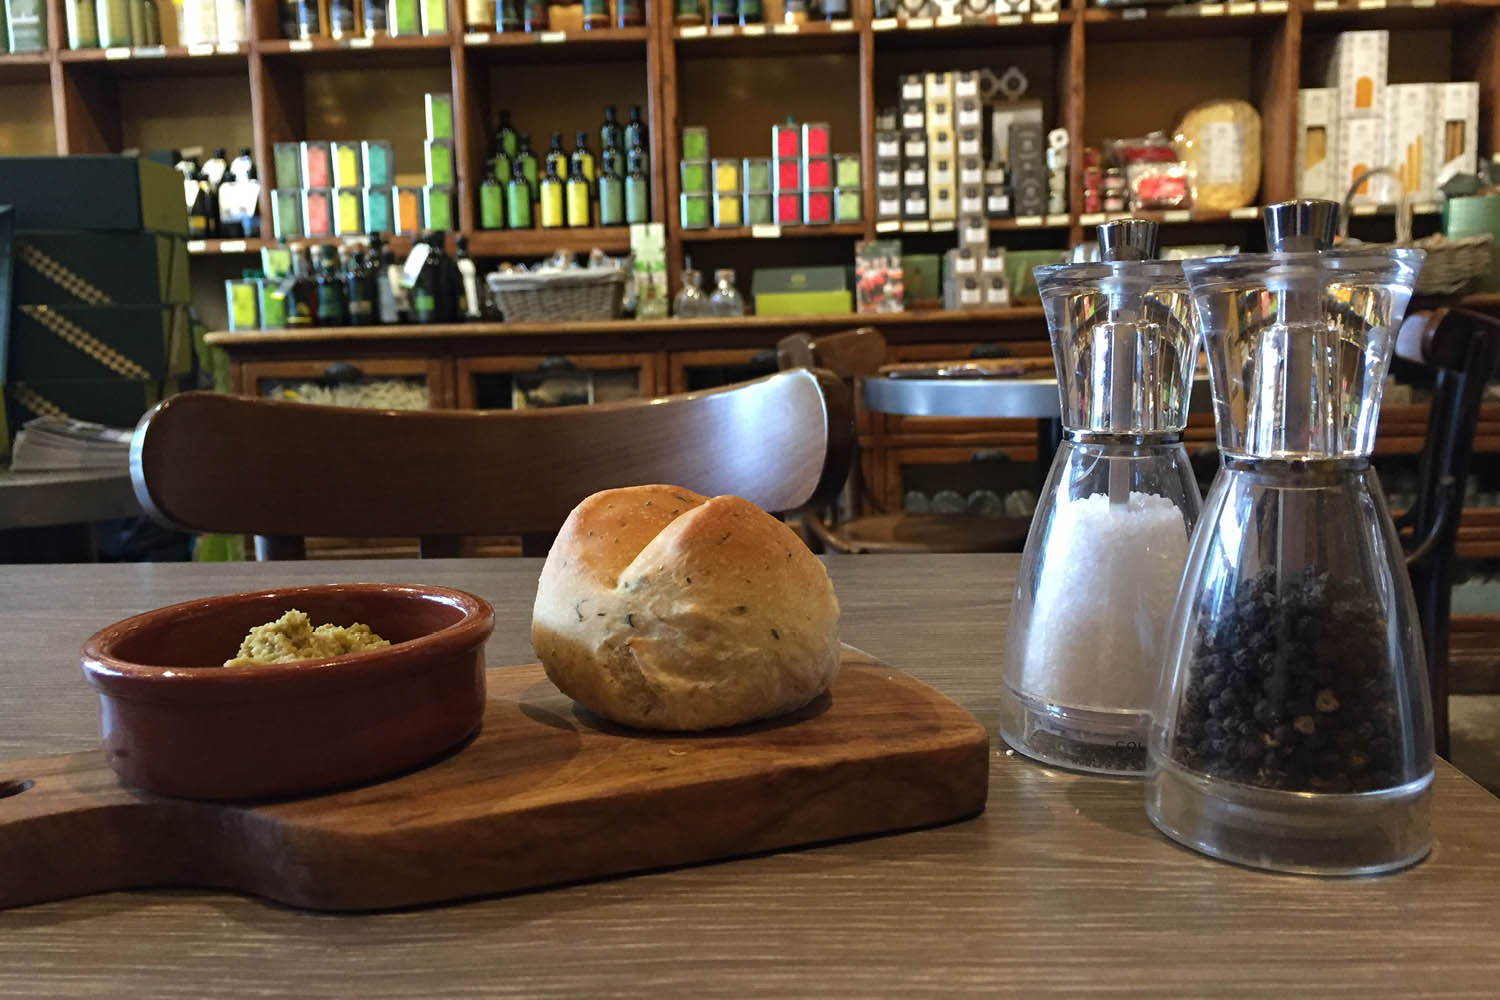 A piece of bread with tapenade in a Mediterranean restaurant